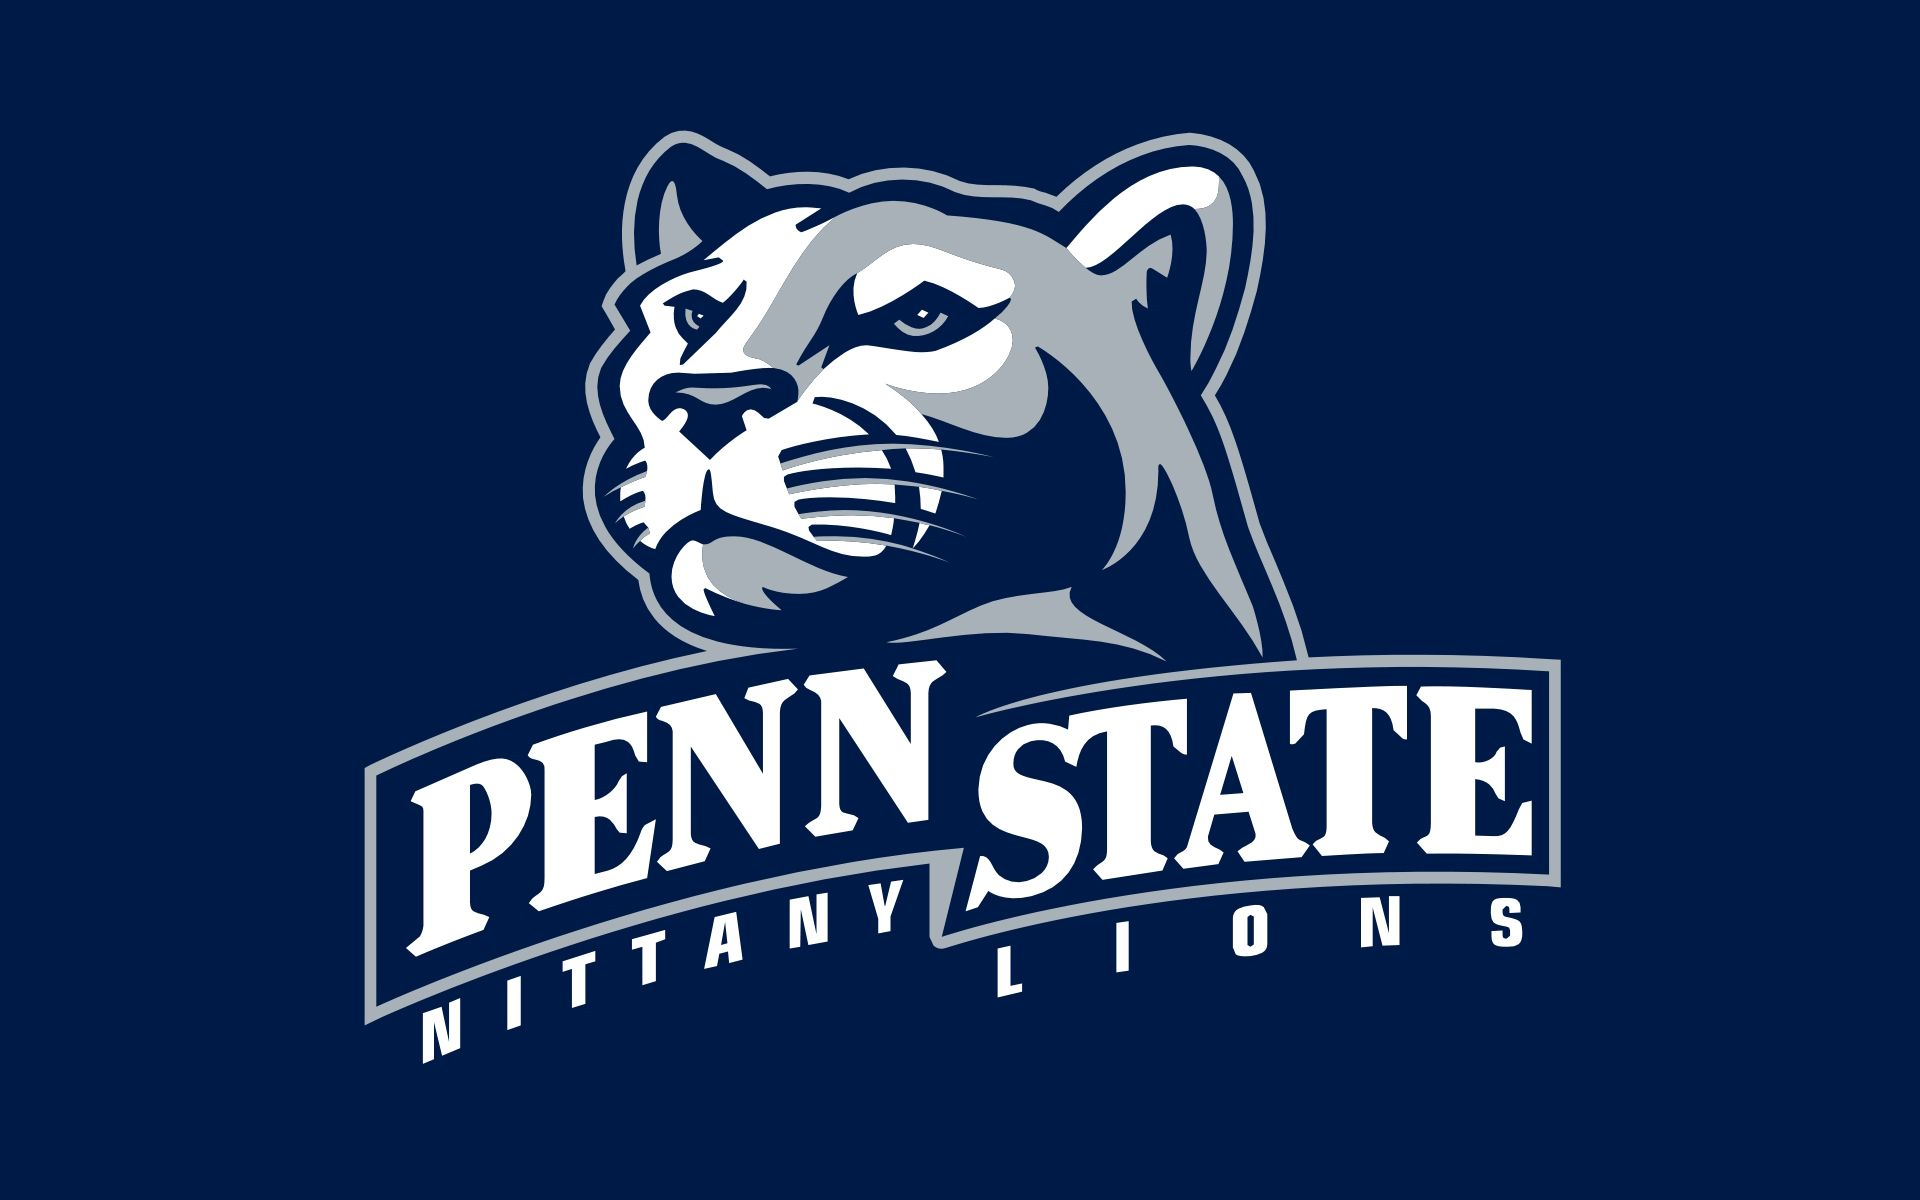 College Football Logos Penn State University College Football